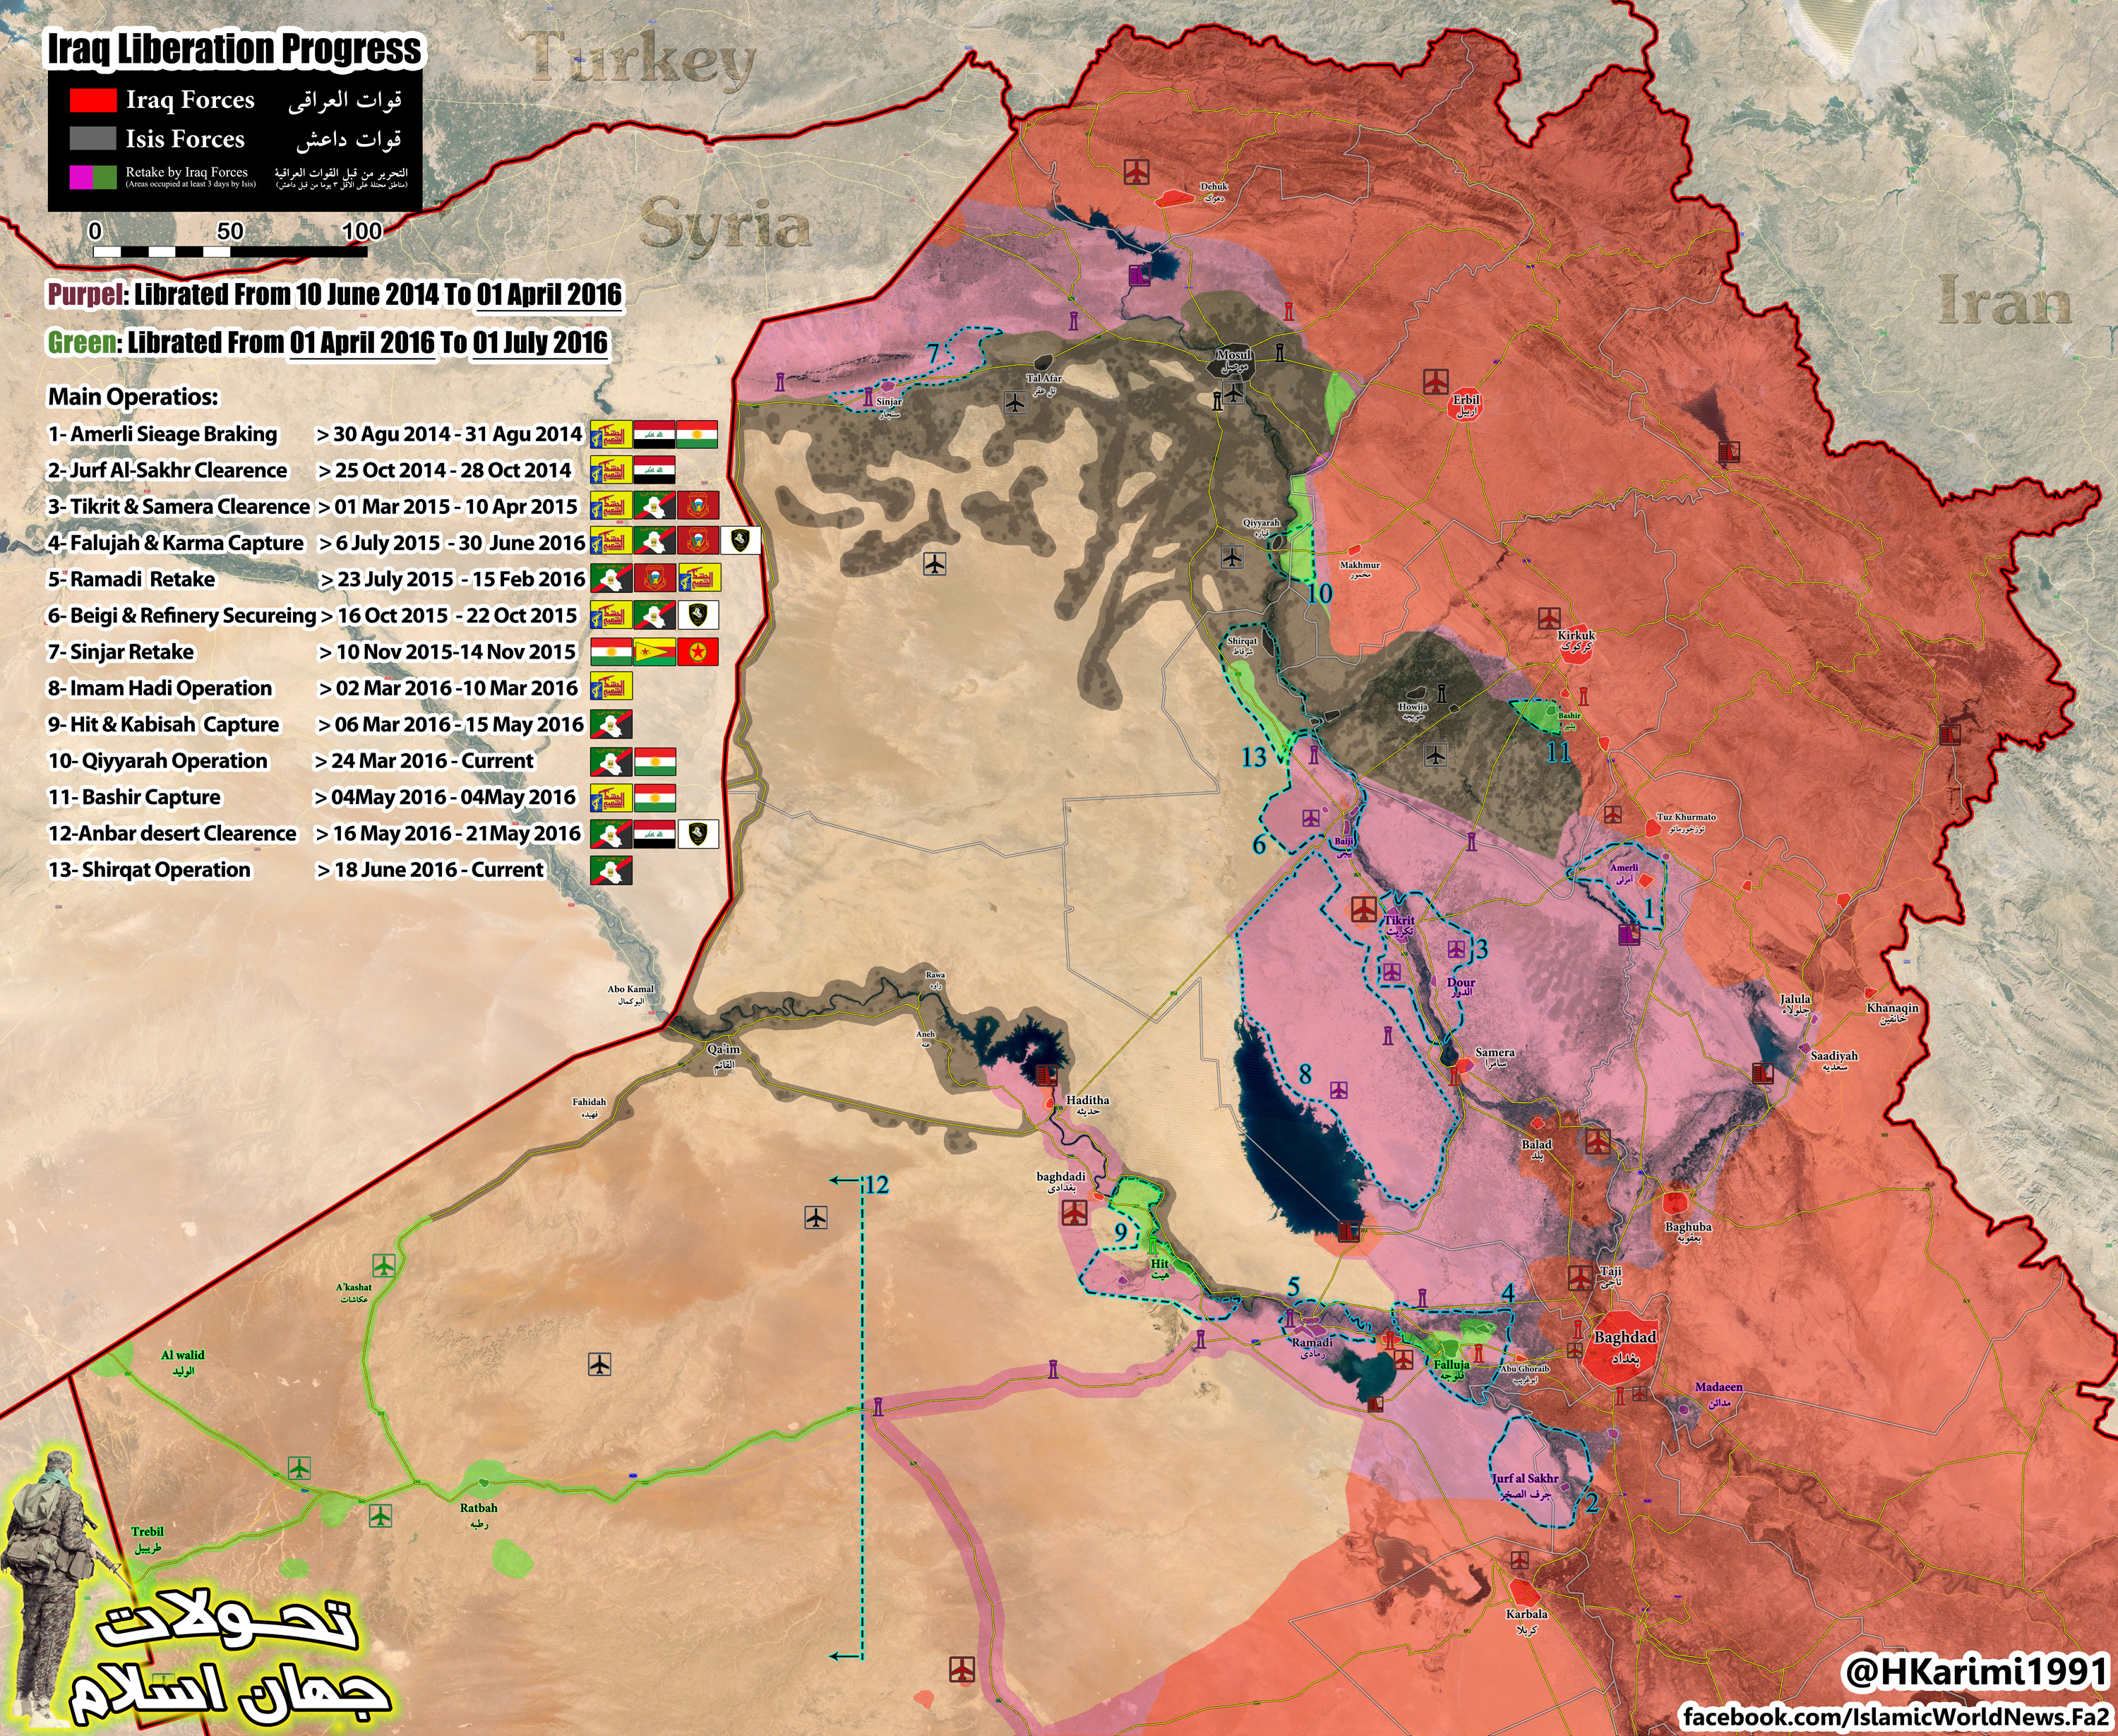 Progress of Military Operations in Iraq